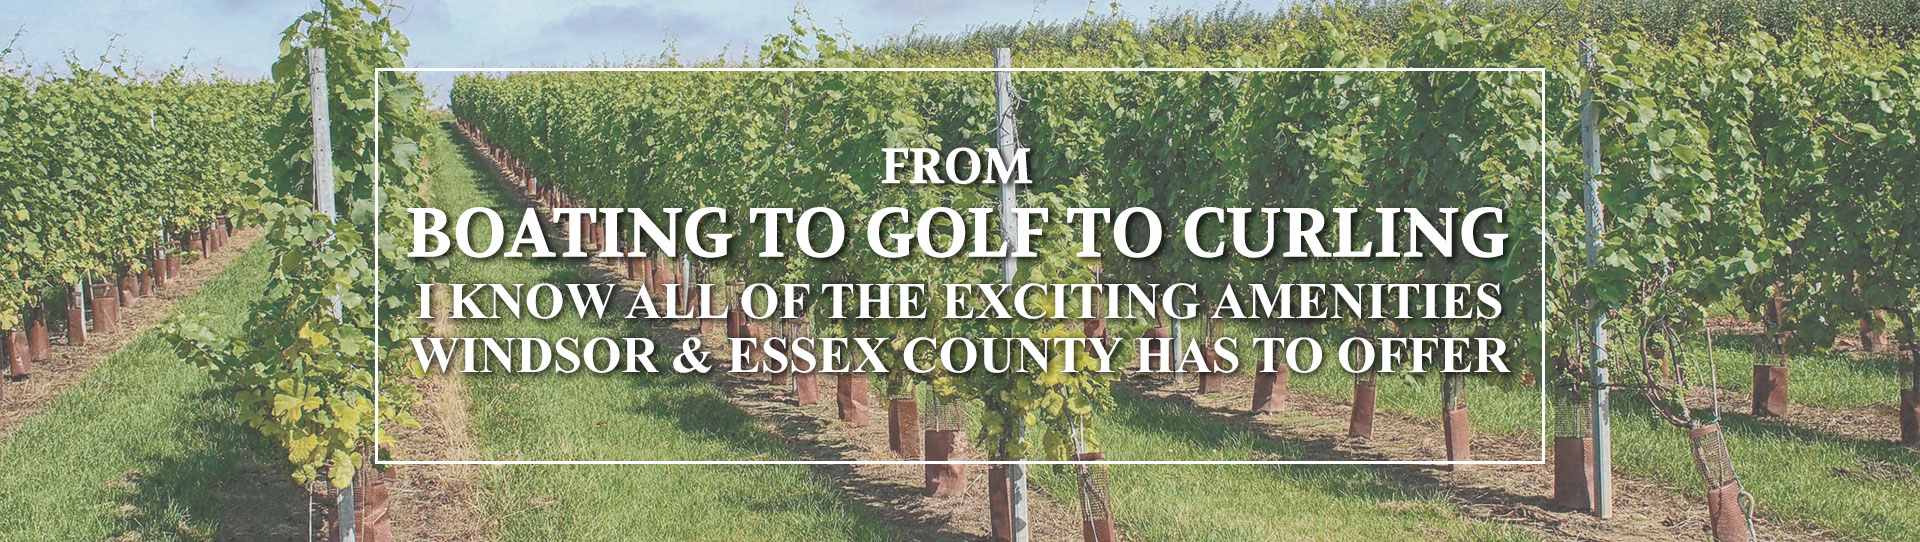 From boating to golf to curling I know all of the exciting amenities Windsor & Essex County has to offer